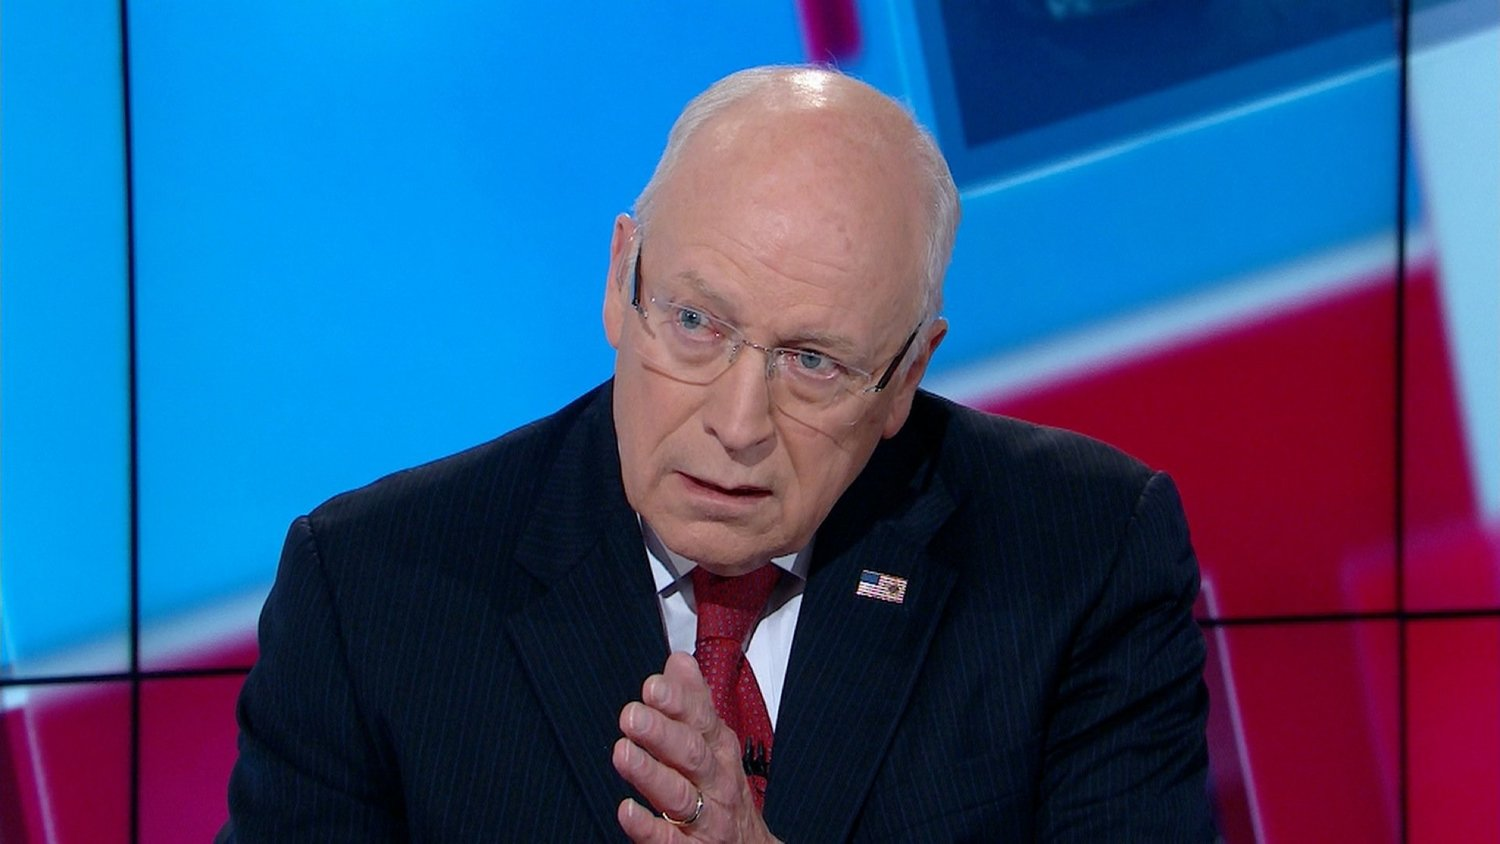 Christian Bale And Others In Talks For Biopic On Former Vice President Dick Cheney